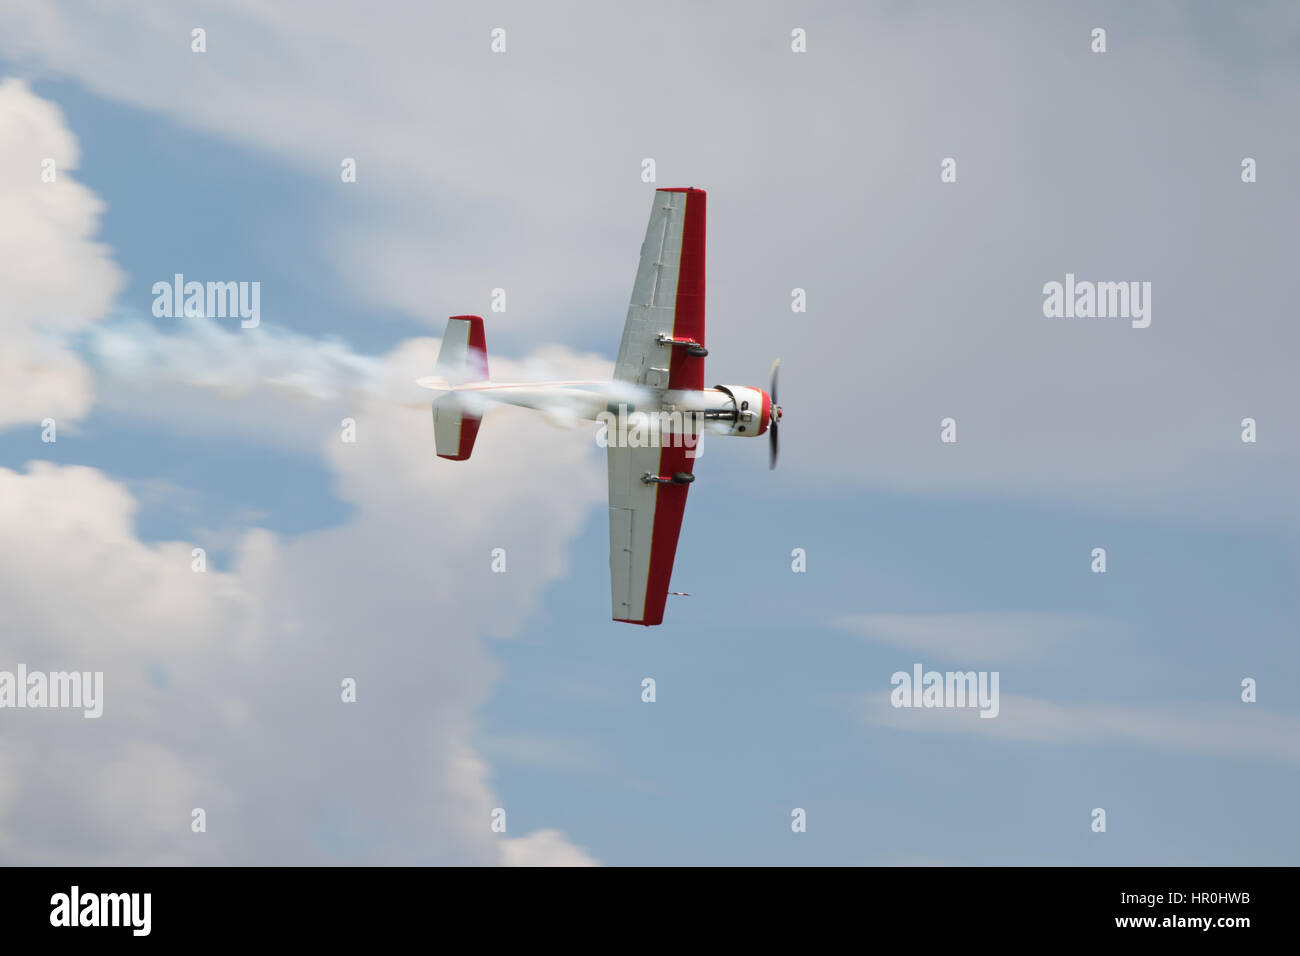 Red - white plane jets of smoke in flight in a blue sky close-up - Stock Image